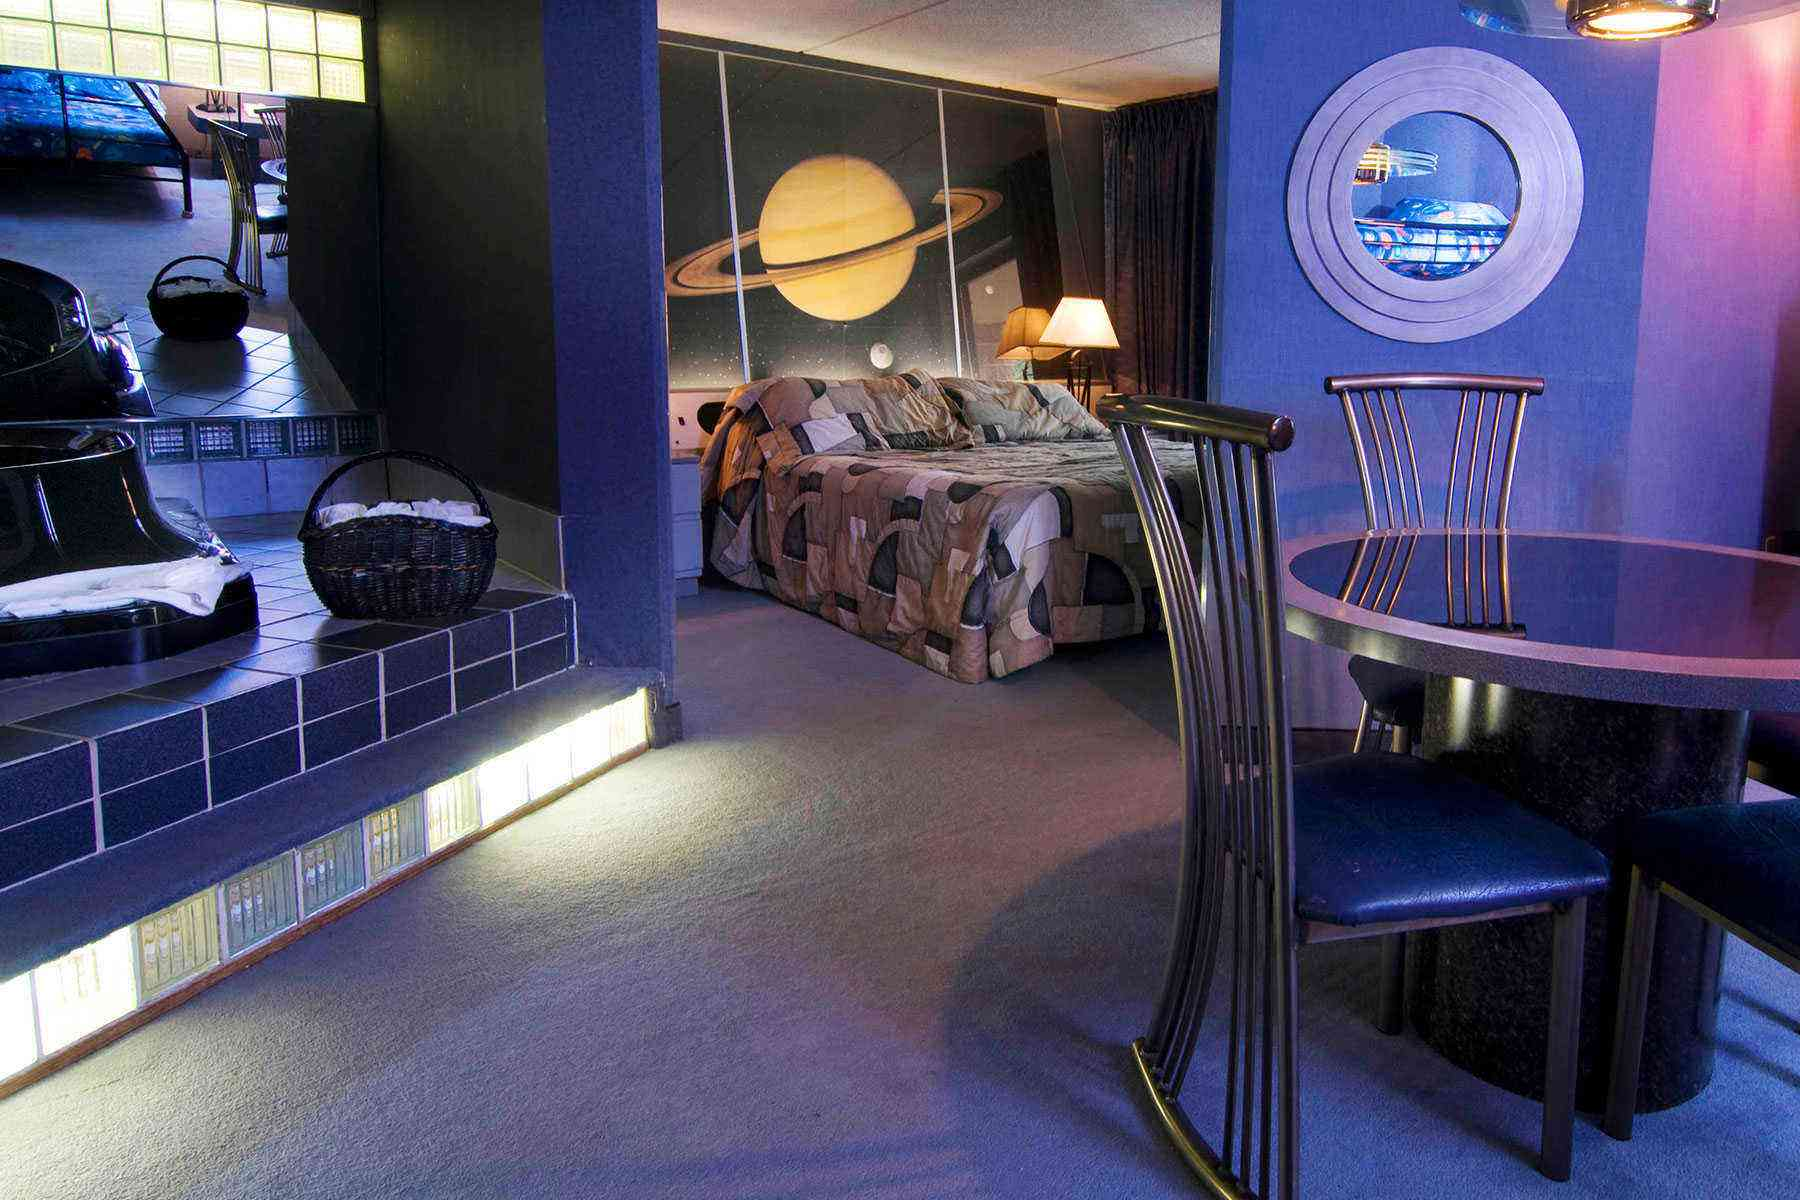 Look At These Space Themed Hotel Rooms